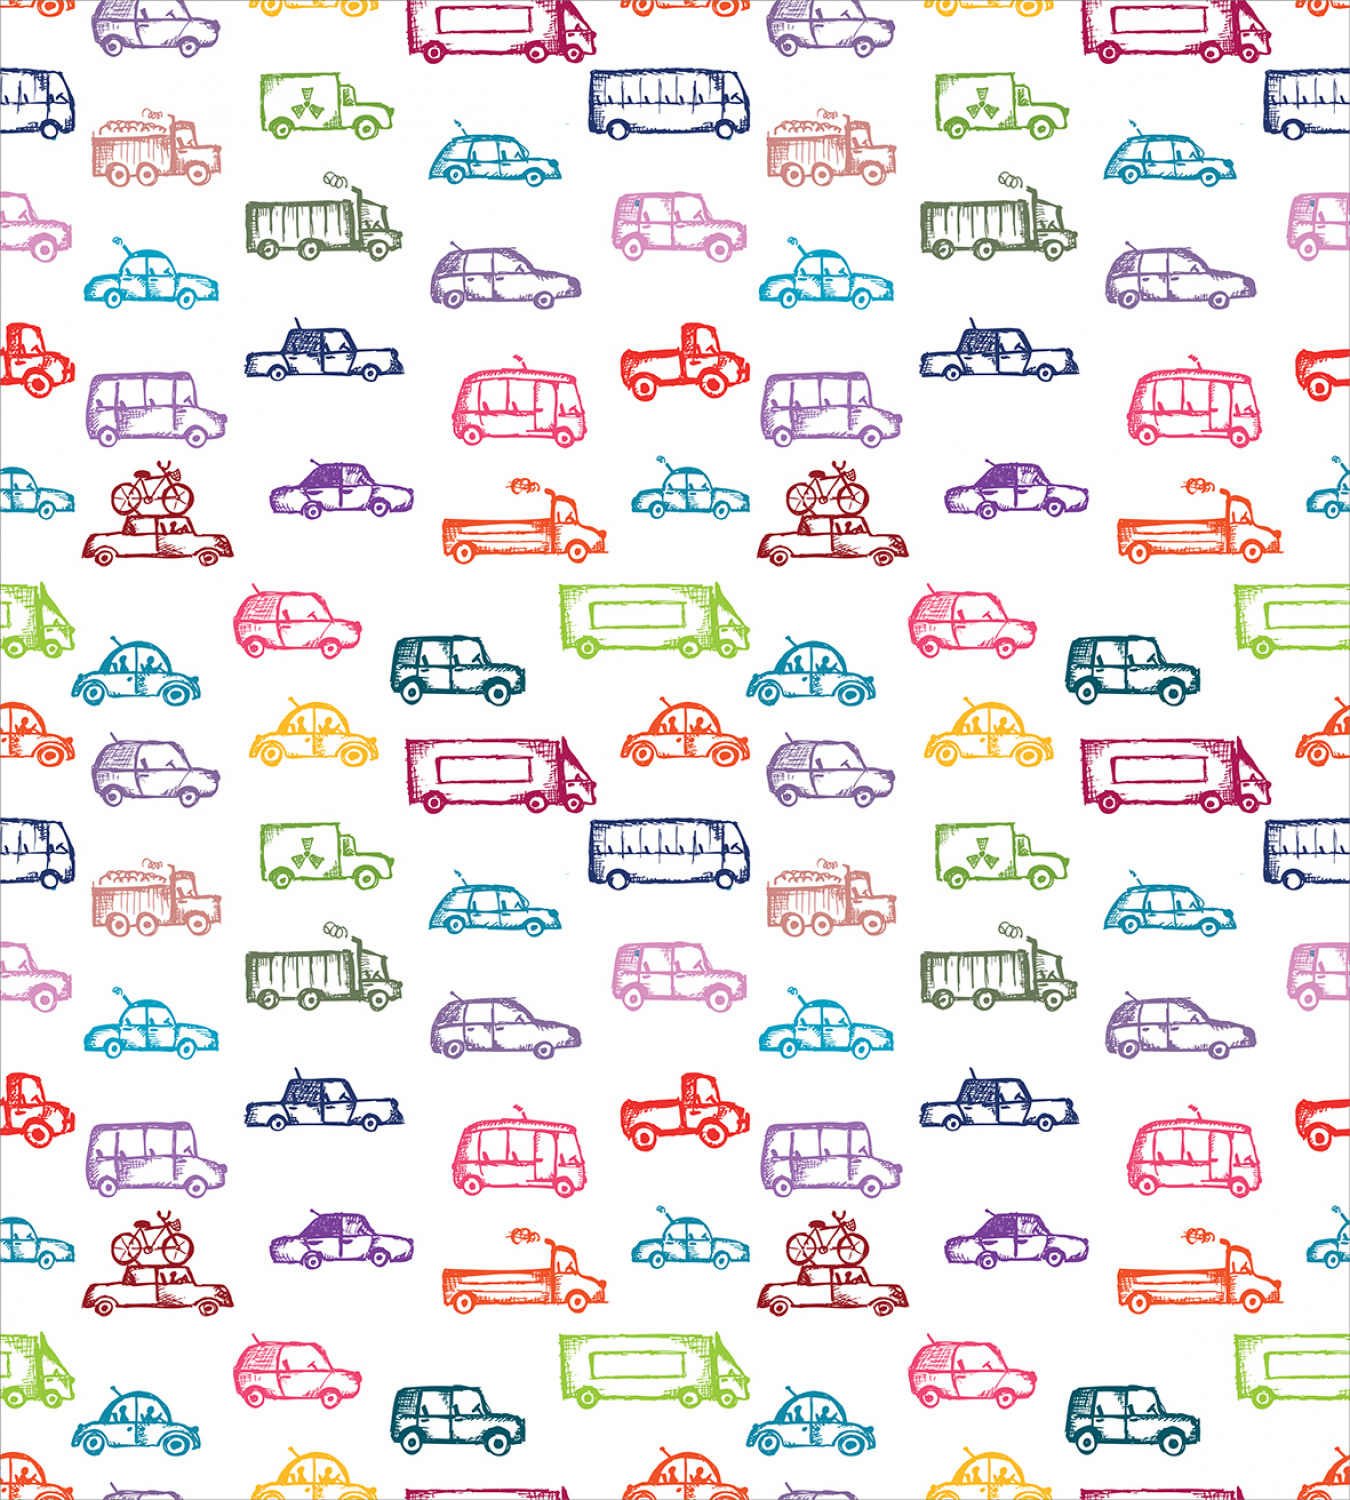 Colorful-Cars-Duvet-Cover-Set-Twin-Queen-King-Sizes-with-Pillow-Shams-Bedding miniature 32